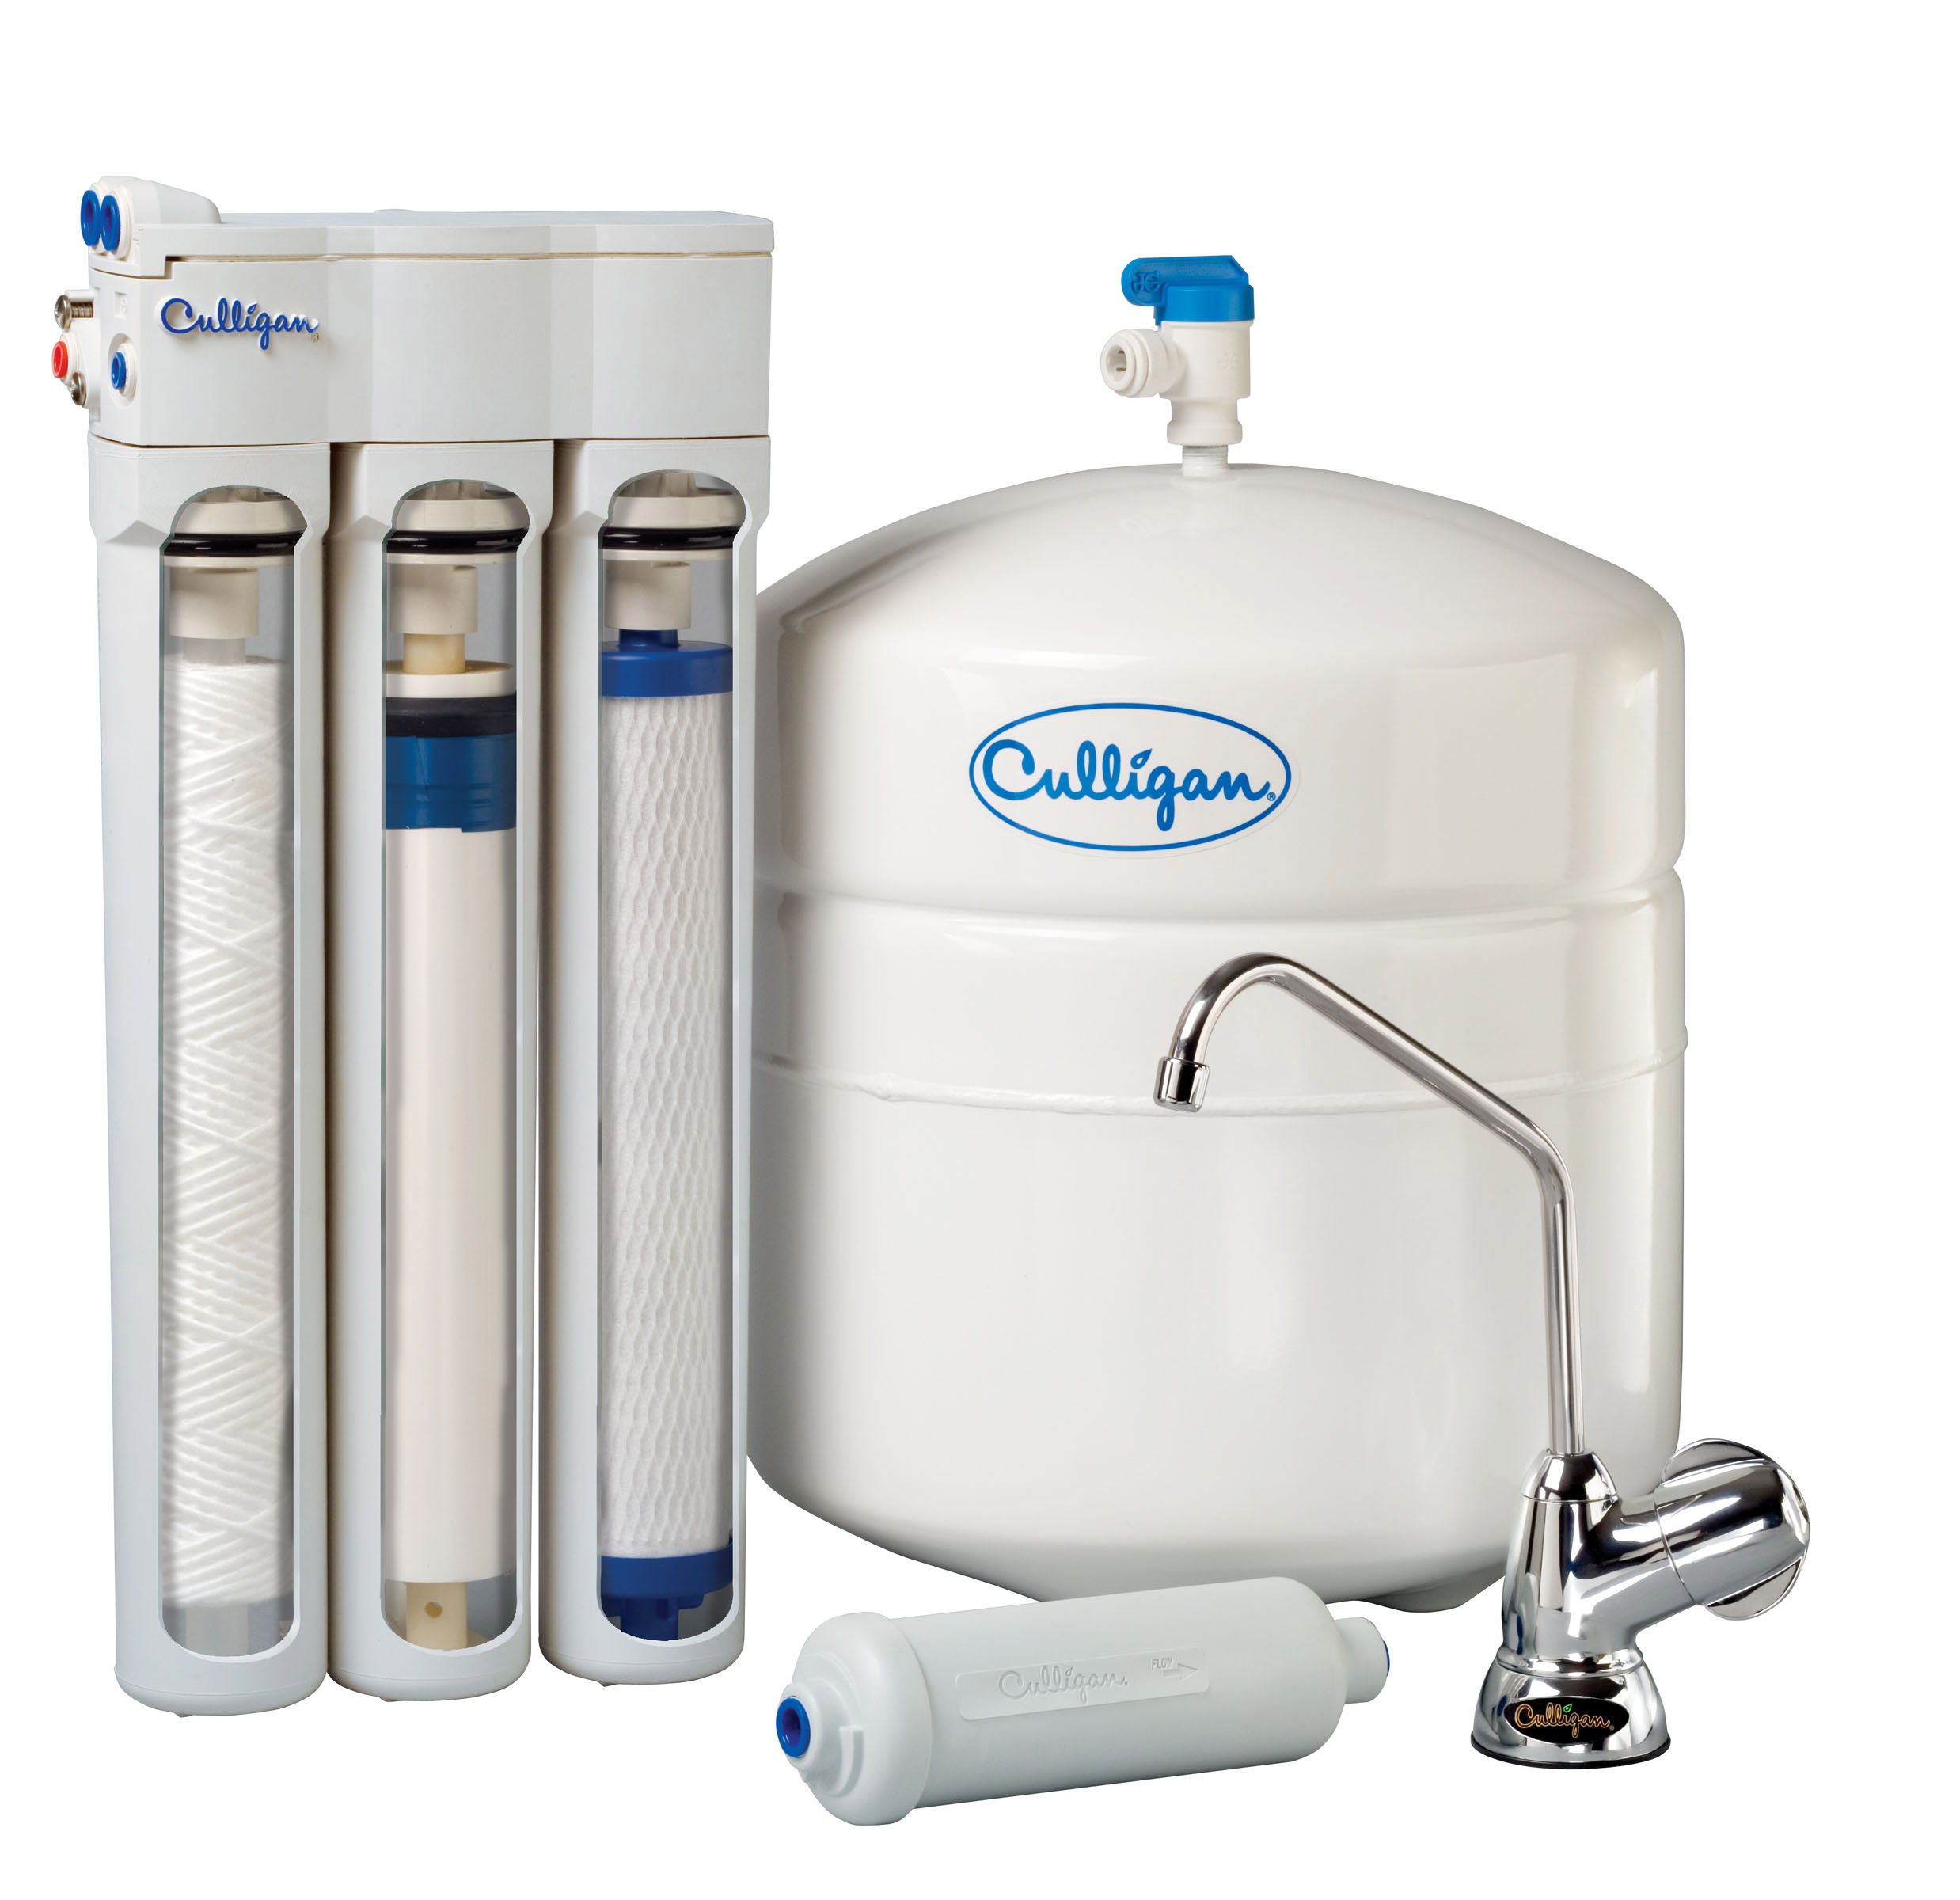 Culligan AC-30 Reverse Osmosis Drinking Water System